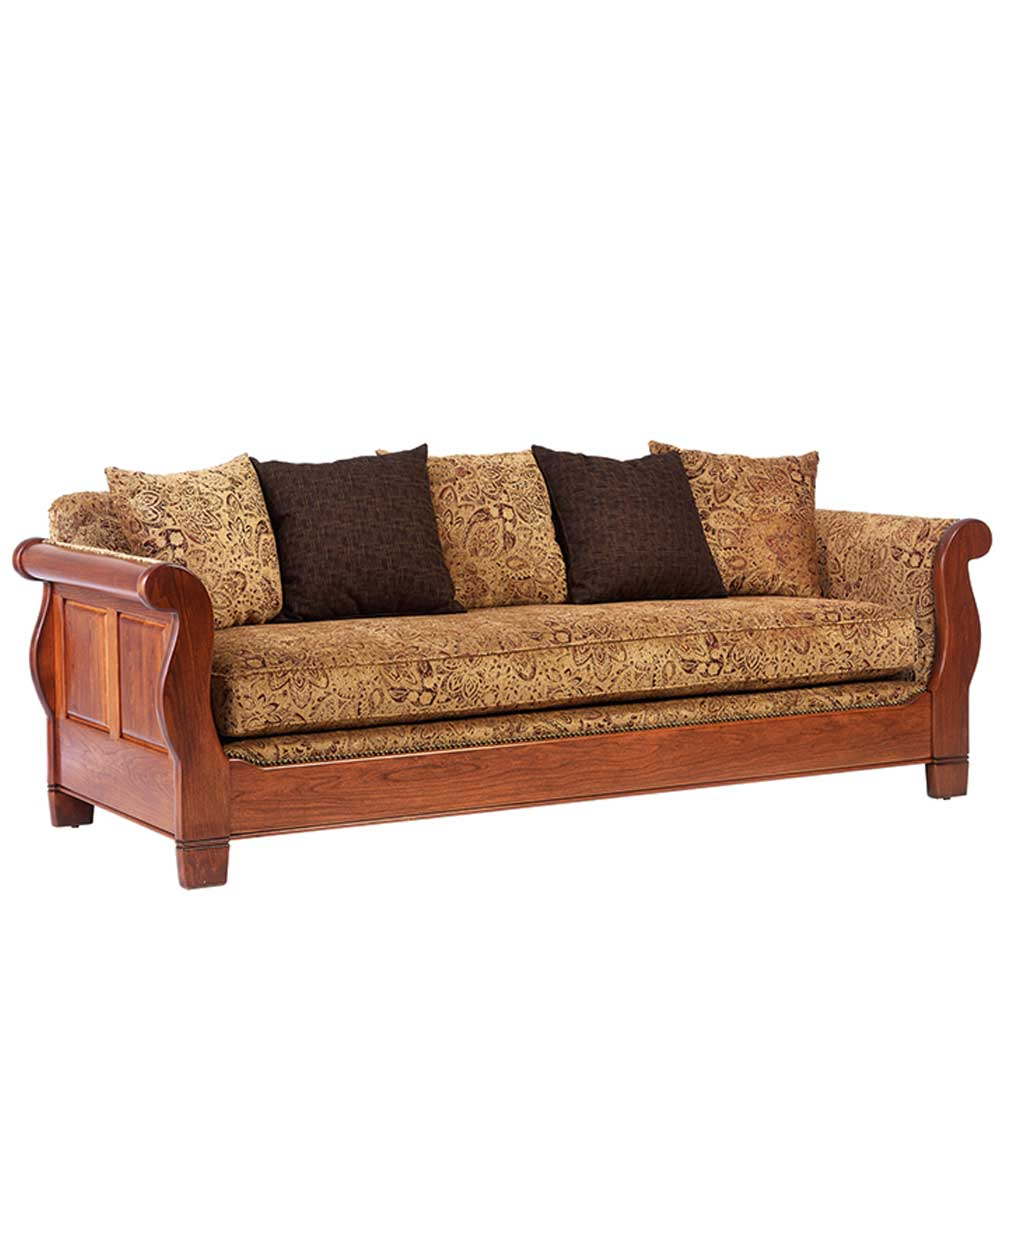 Sleigh Sofa on Amish Made Bedroom Furniture